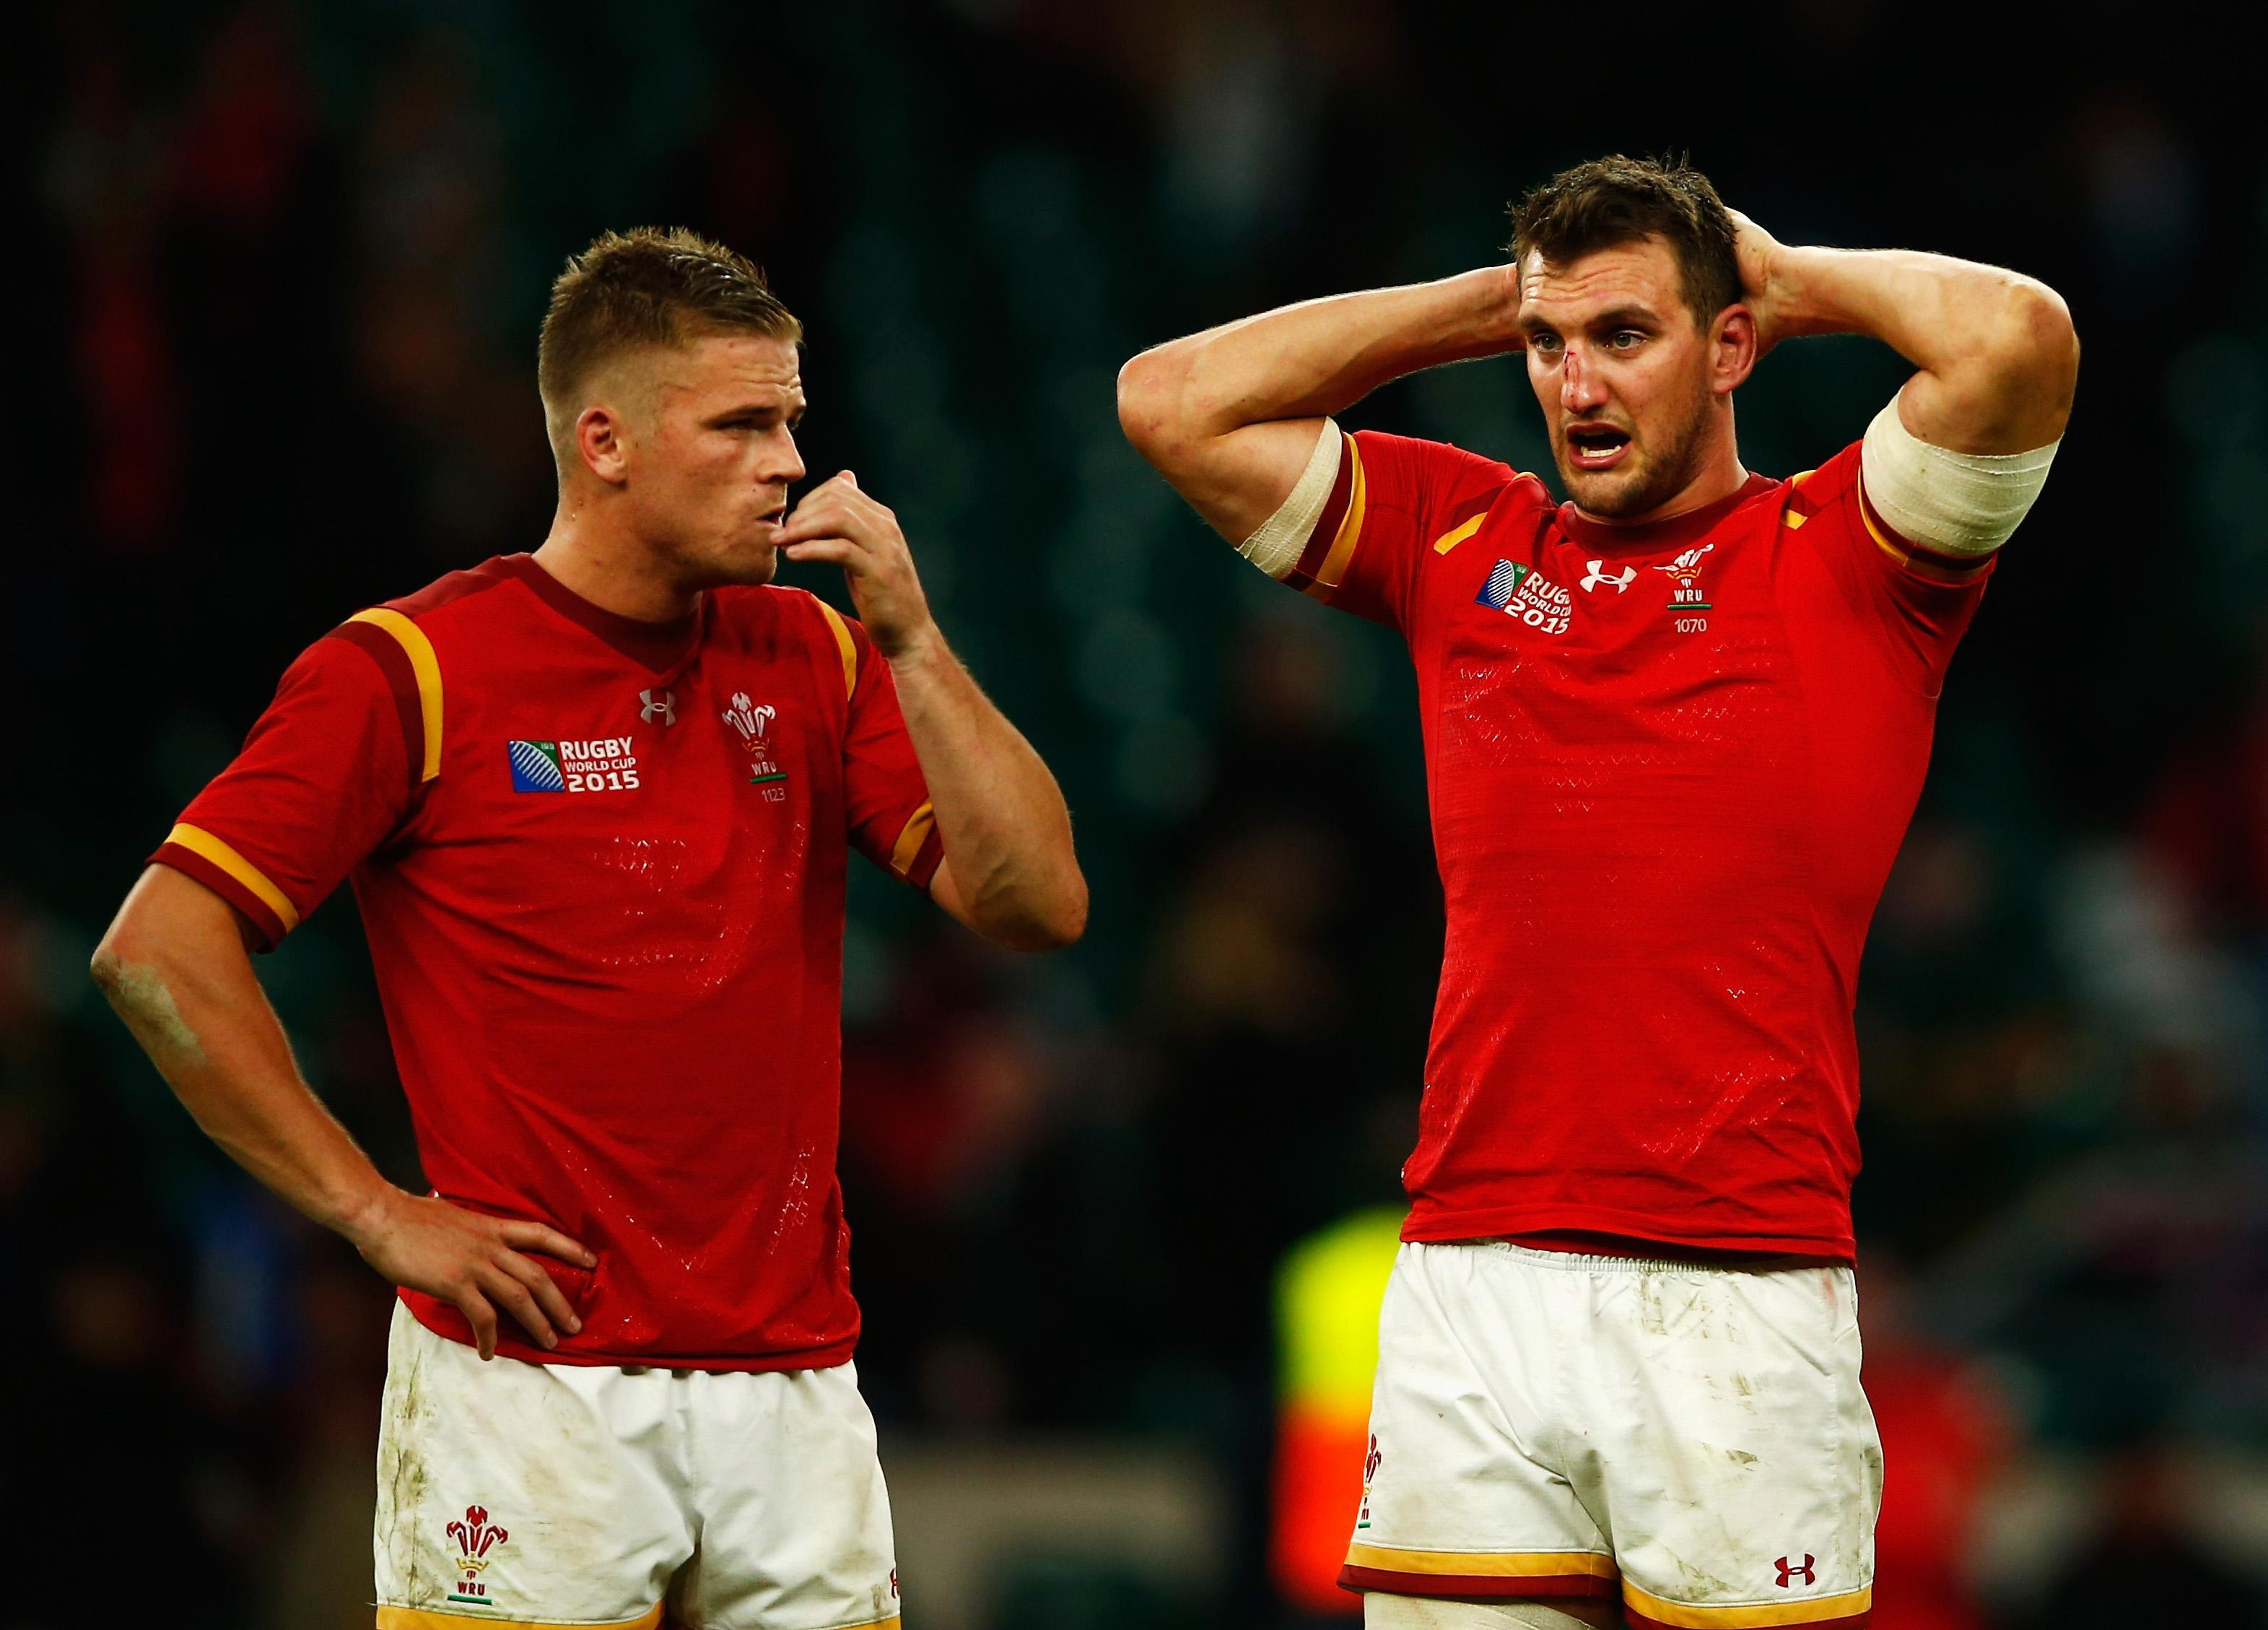 Six Nations: Lions and Wales legend Sam Warburton reveals feared career 'might be over' from horror neck injury